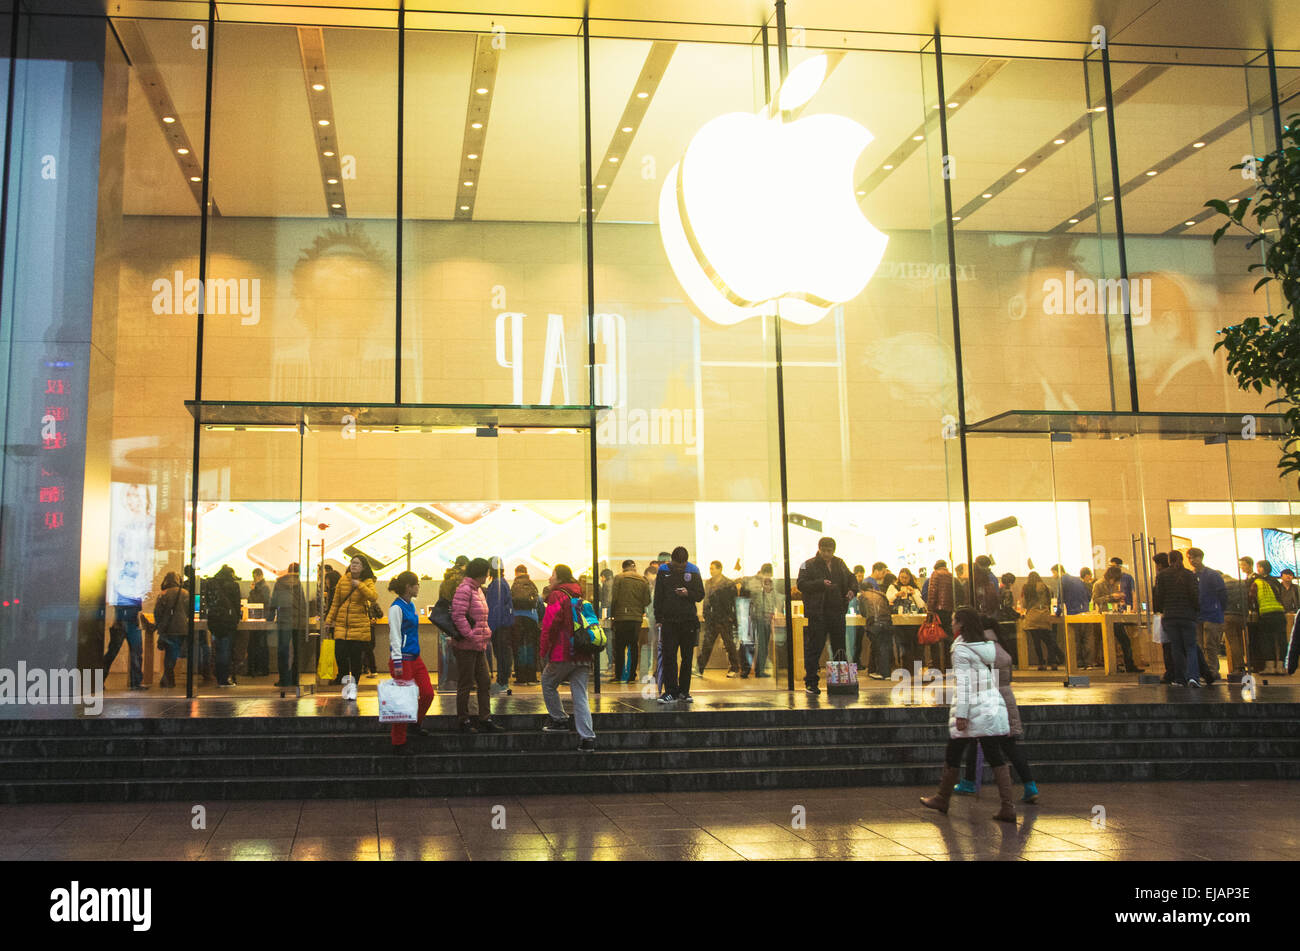 apple flagship store in shanghai china - Stock Image